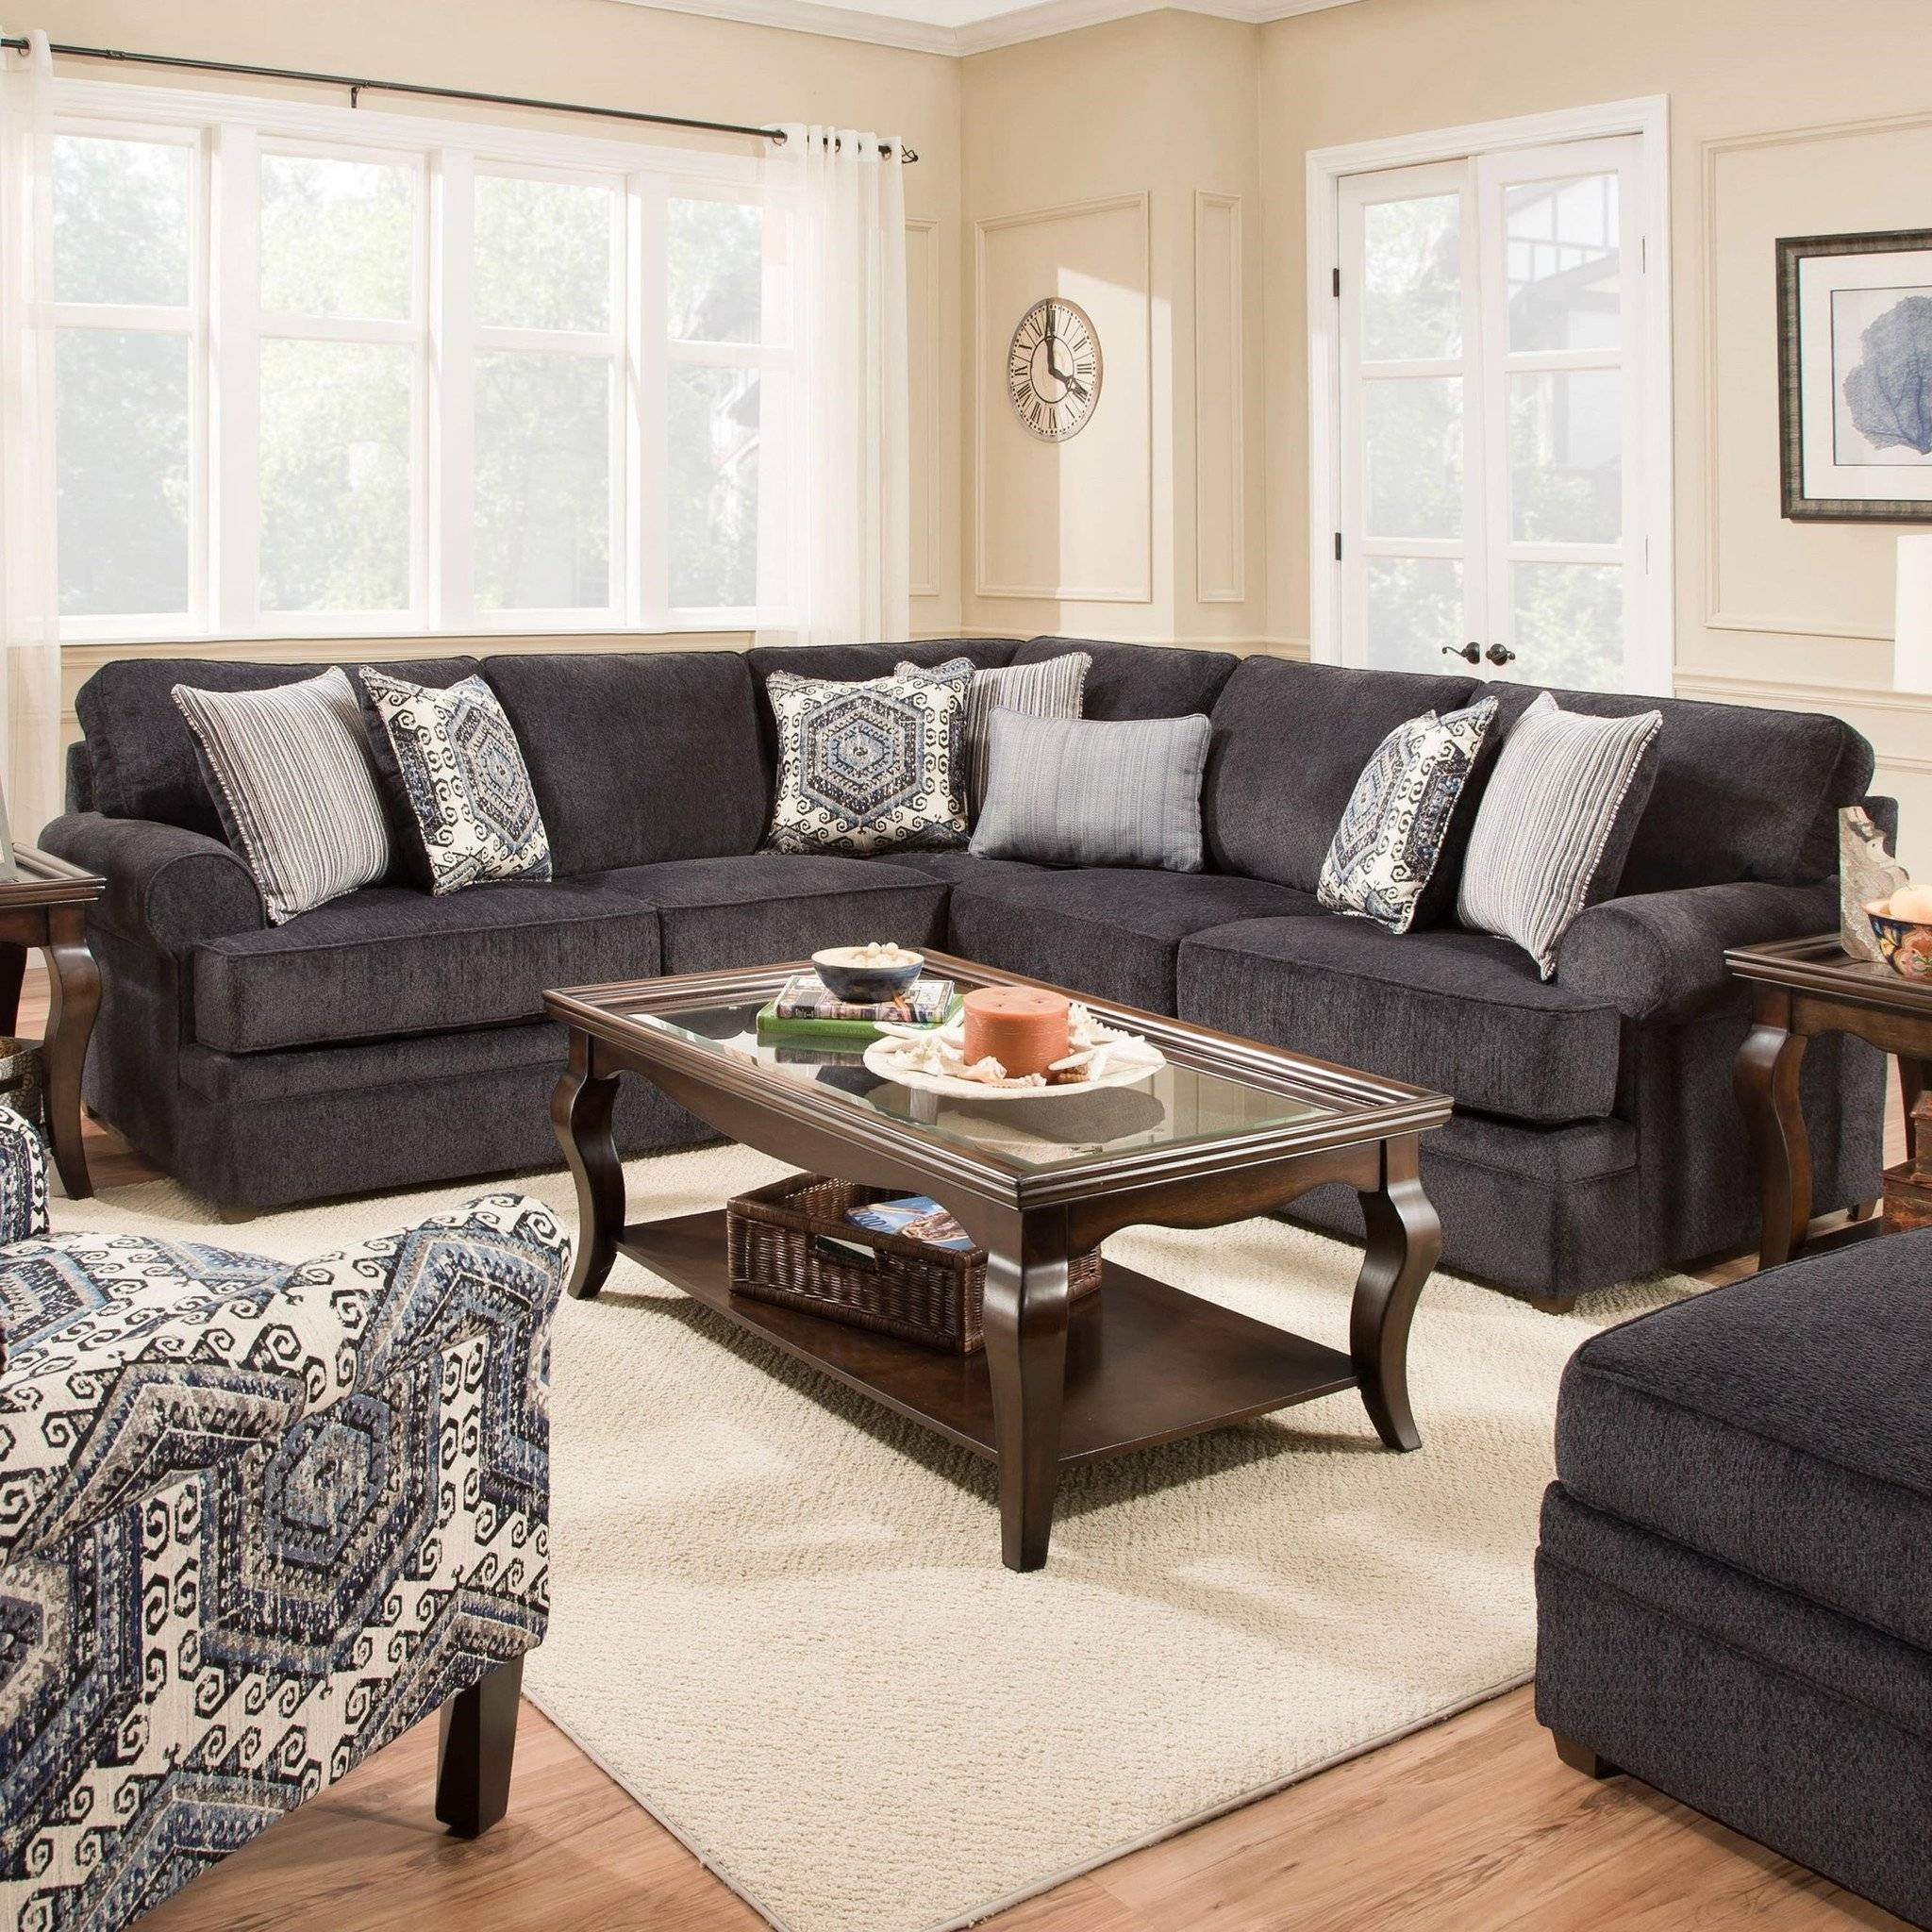 Furniture: Simmons Sectional For Comfortable Seating — Threestems pertaining to Simmons Microfiber Sofas (Image 10 of 15)